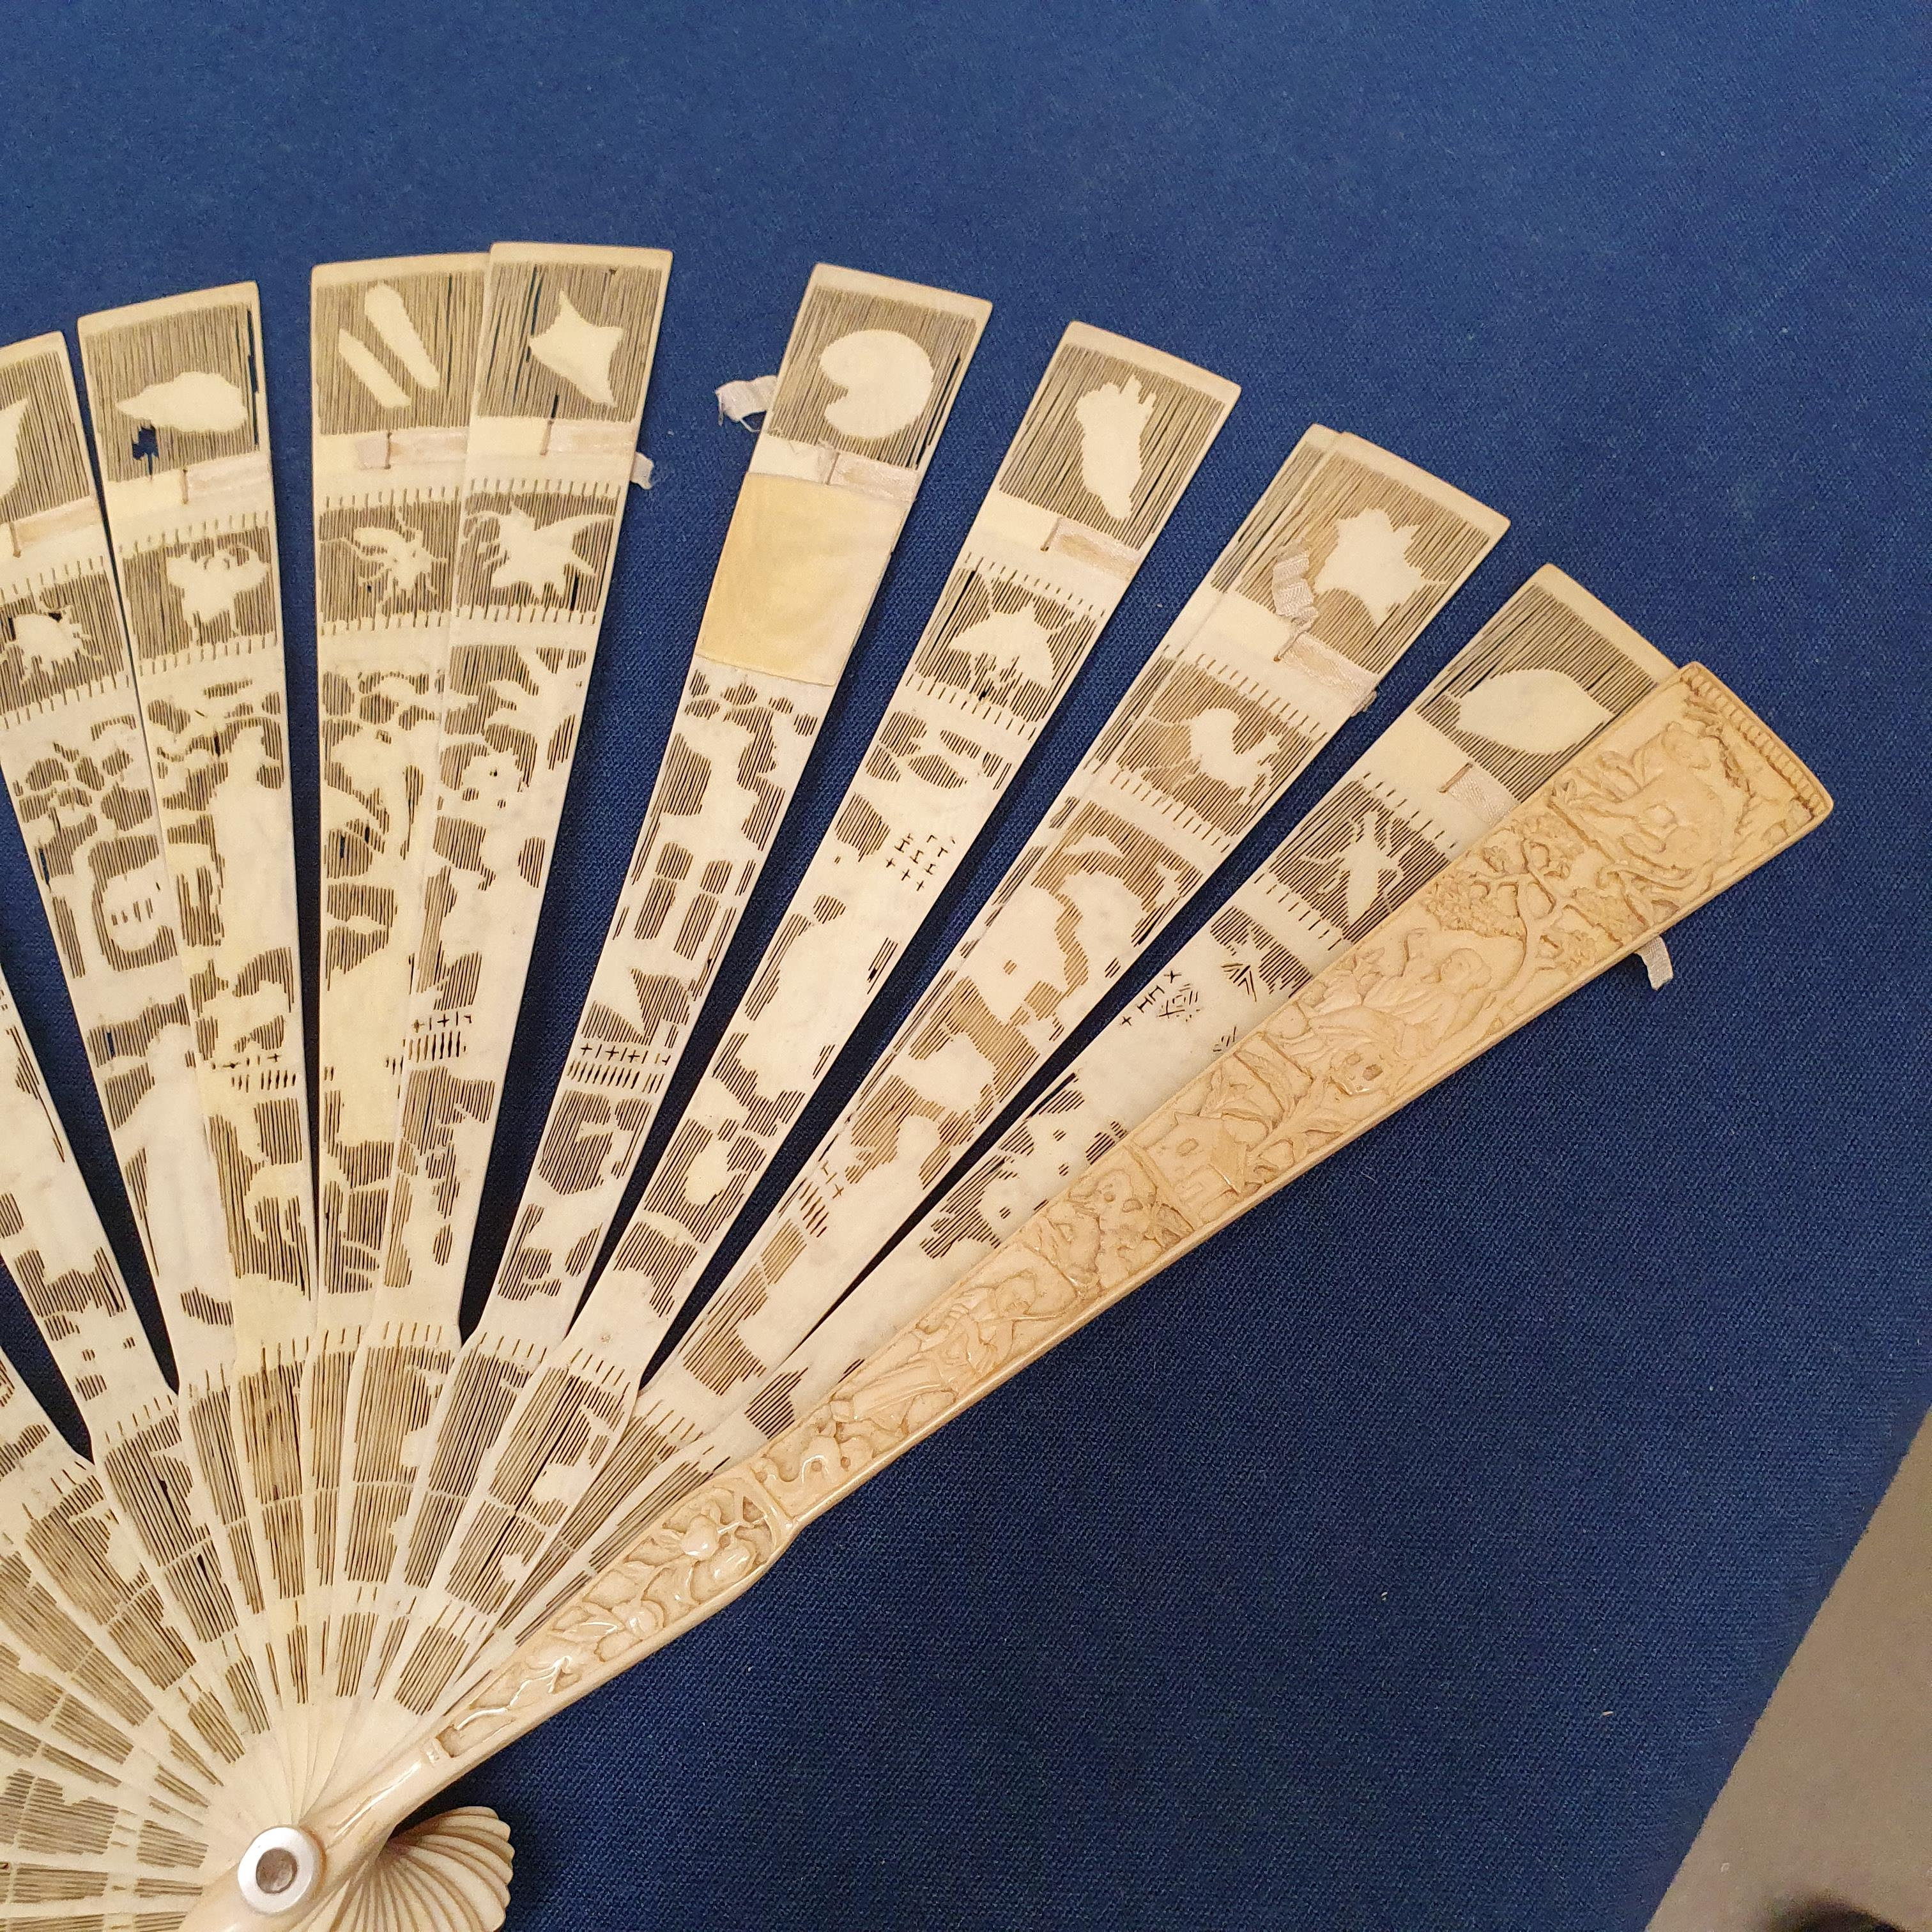 A Chinese ivory brisee fan, two others, and a similar fan with silk embroidered decoration, in a - Image 23 of 47